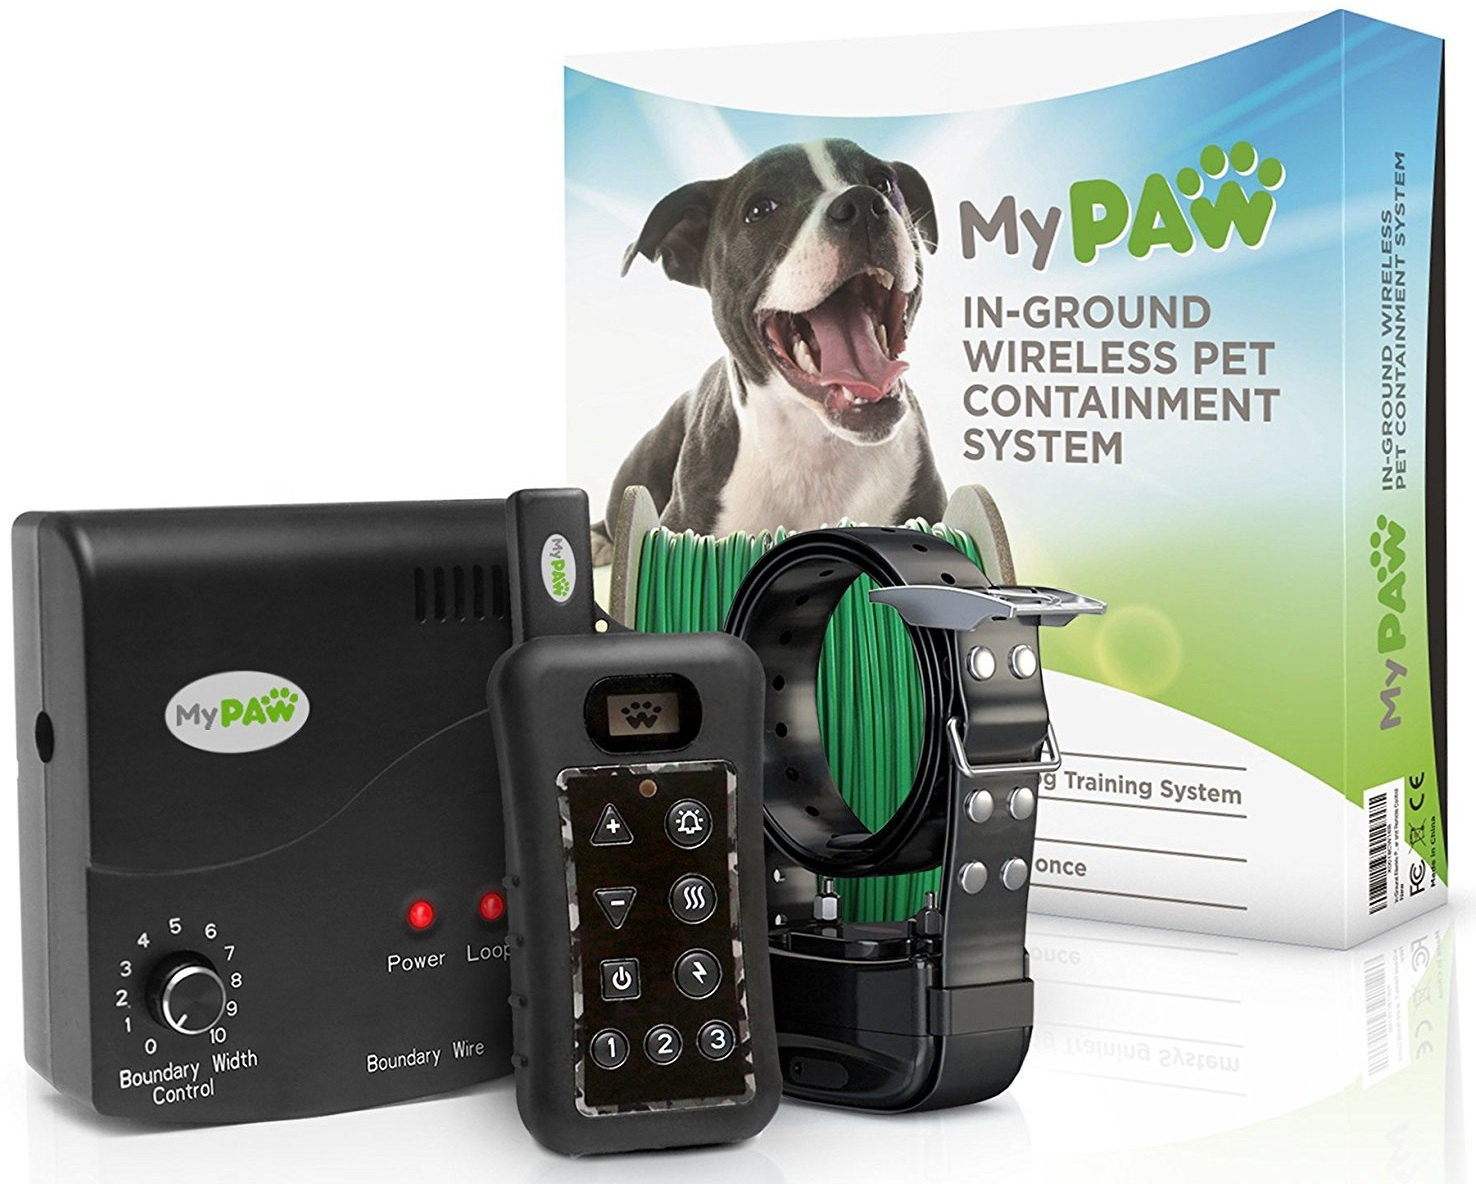 my paw inground electric pet containment system review featured